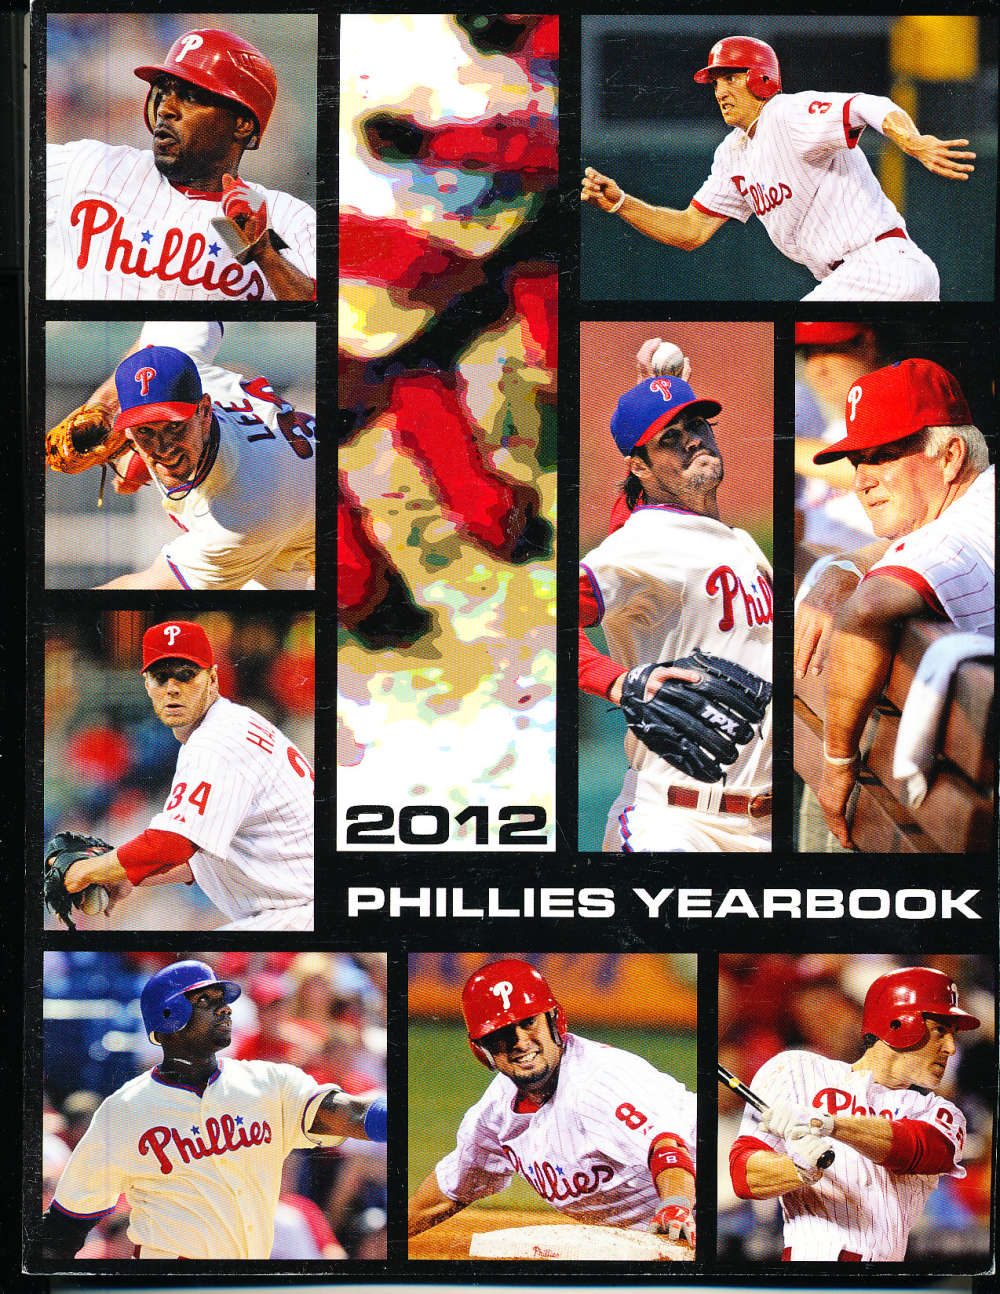 2012 Philadelphia Phillies Yearbook nm bxyb